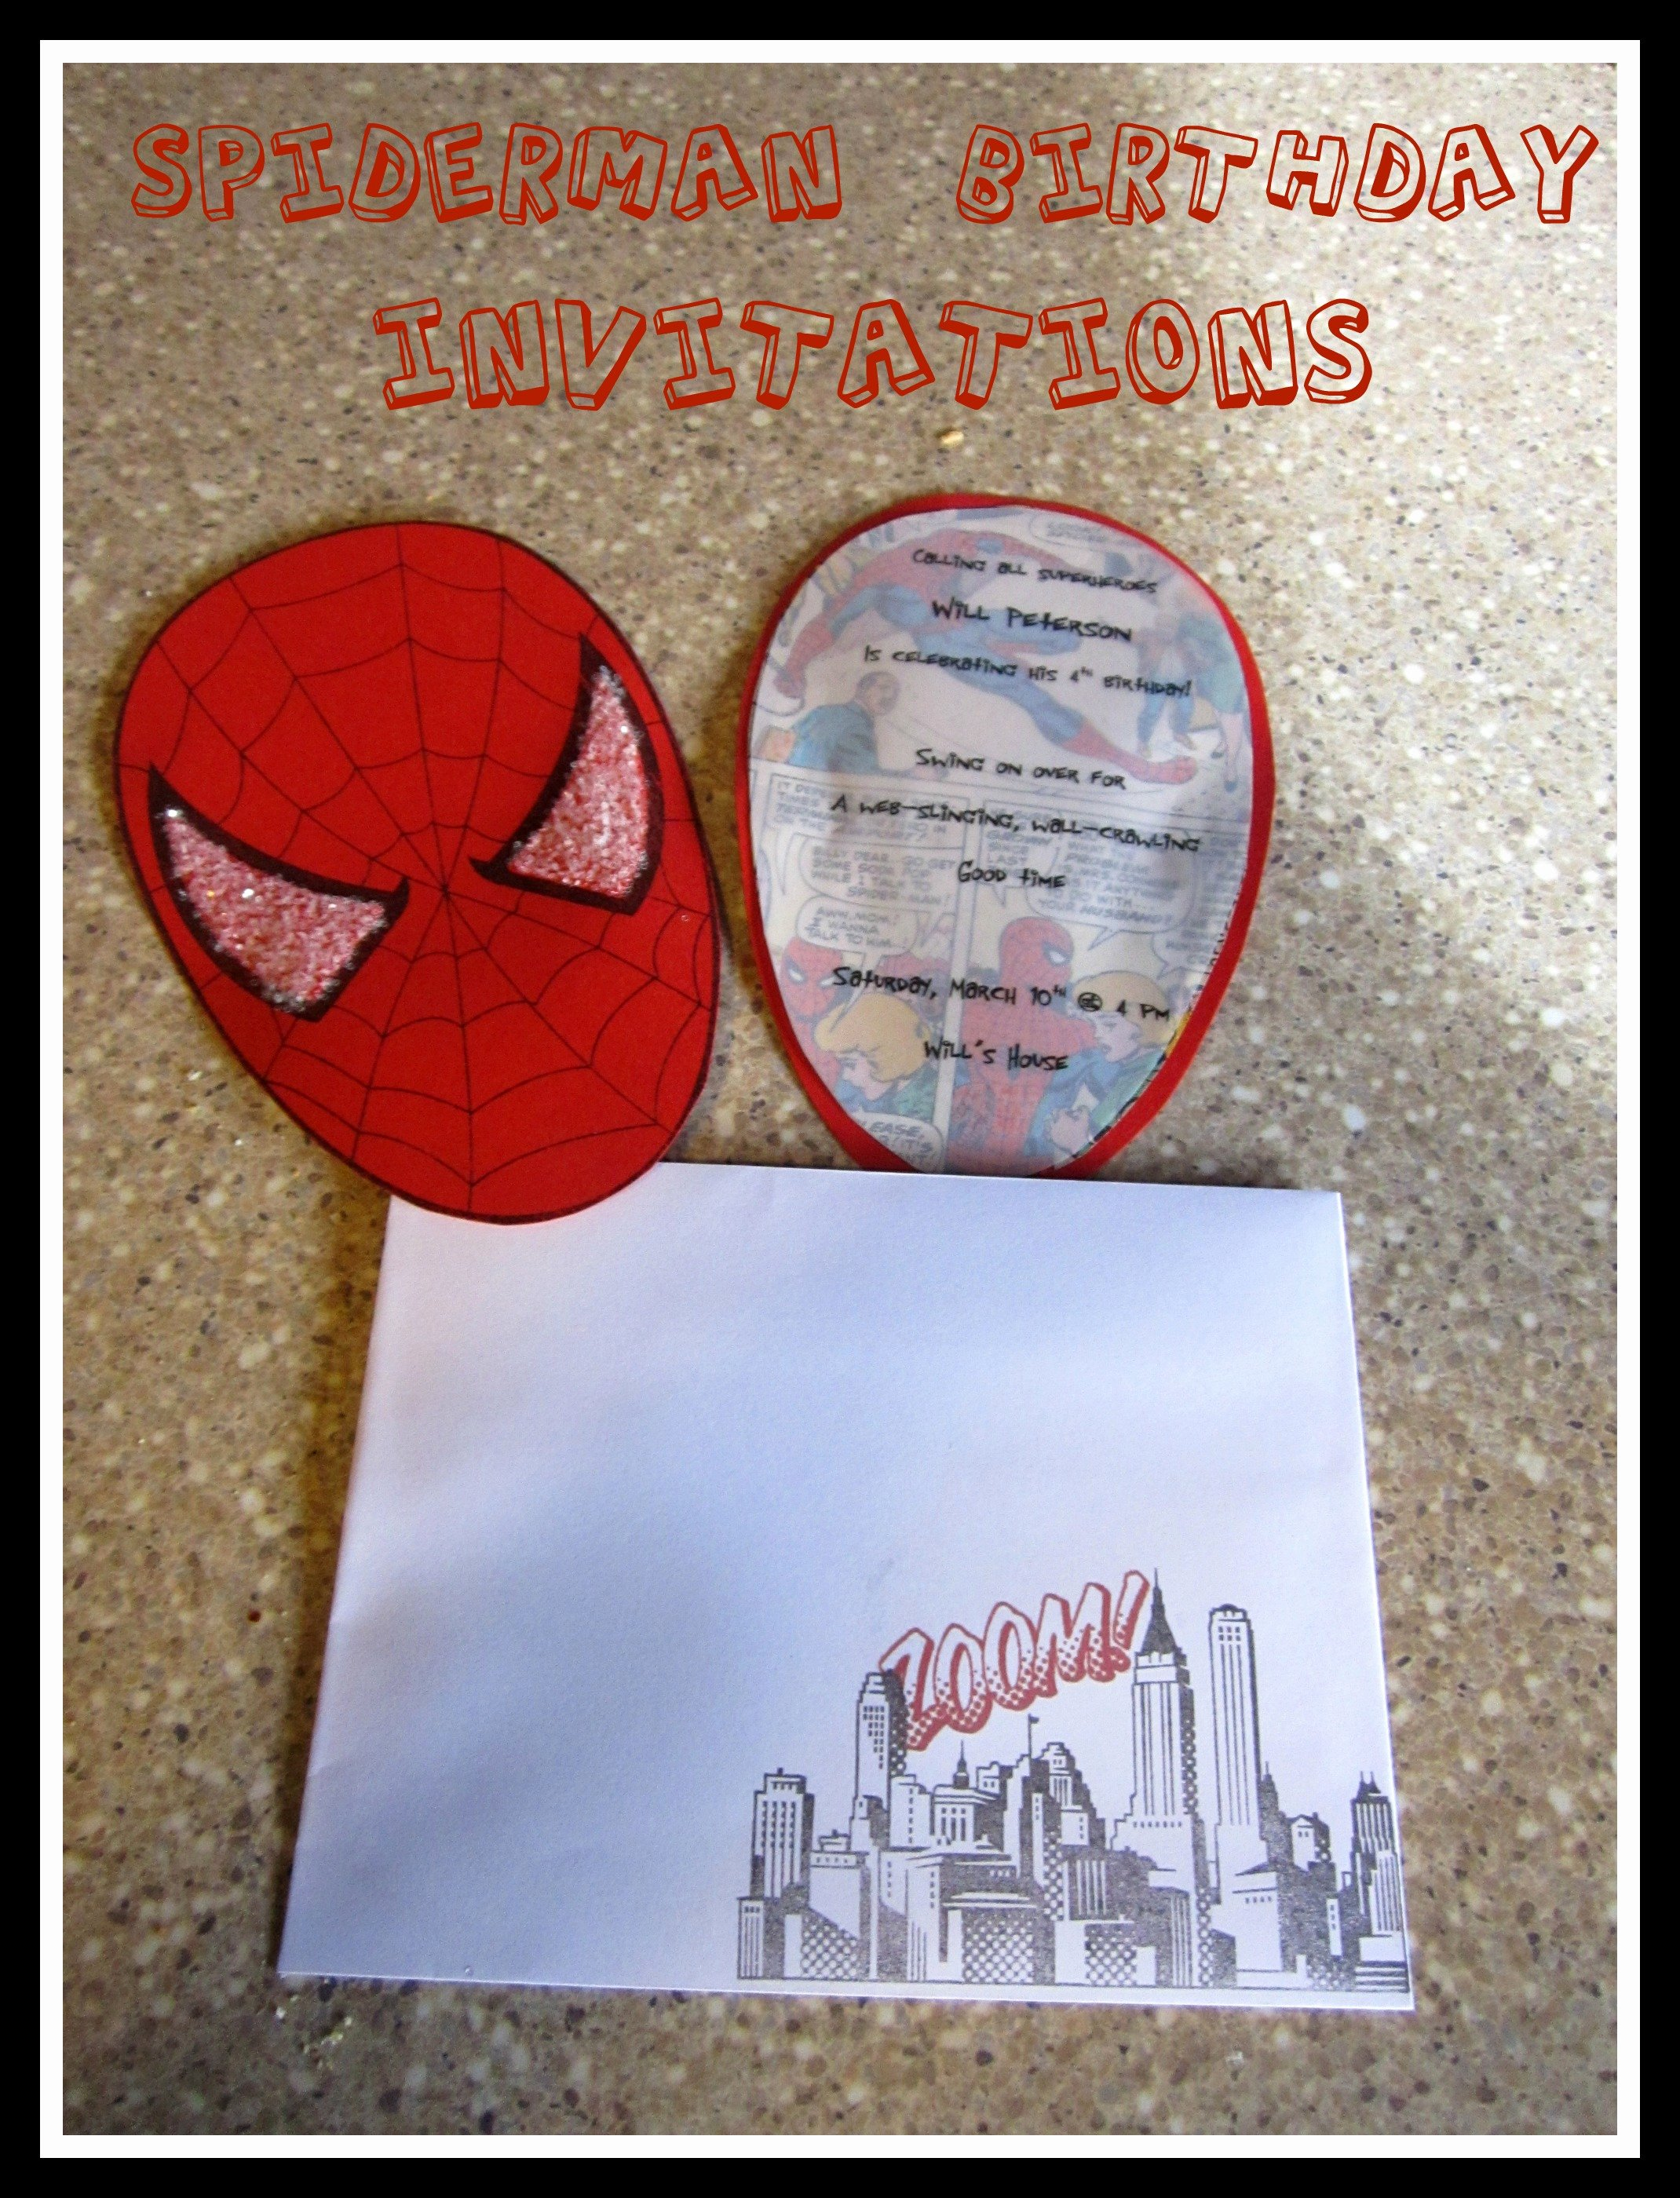 Spiderman Birthday Invitation Template Elegant Spiderman Birthday Party Part 1 Invitations